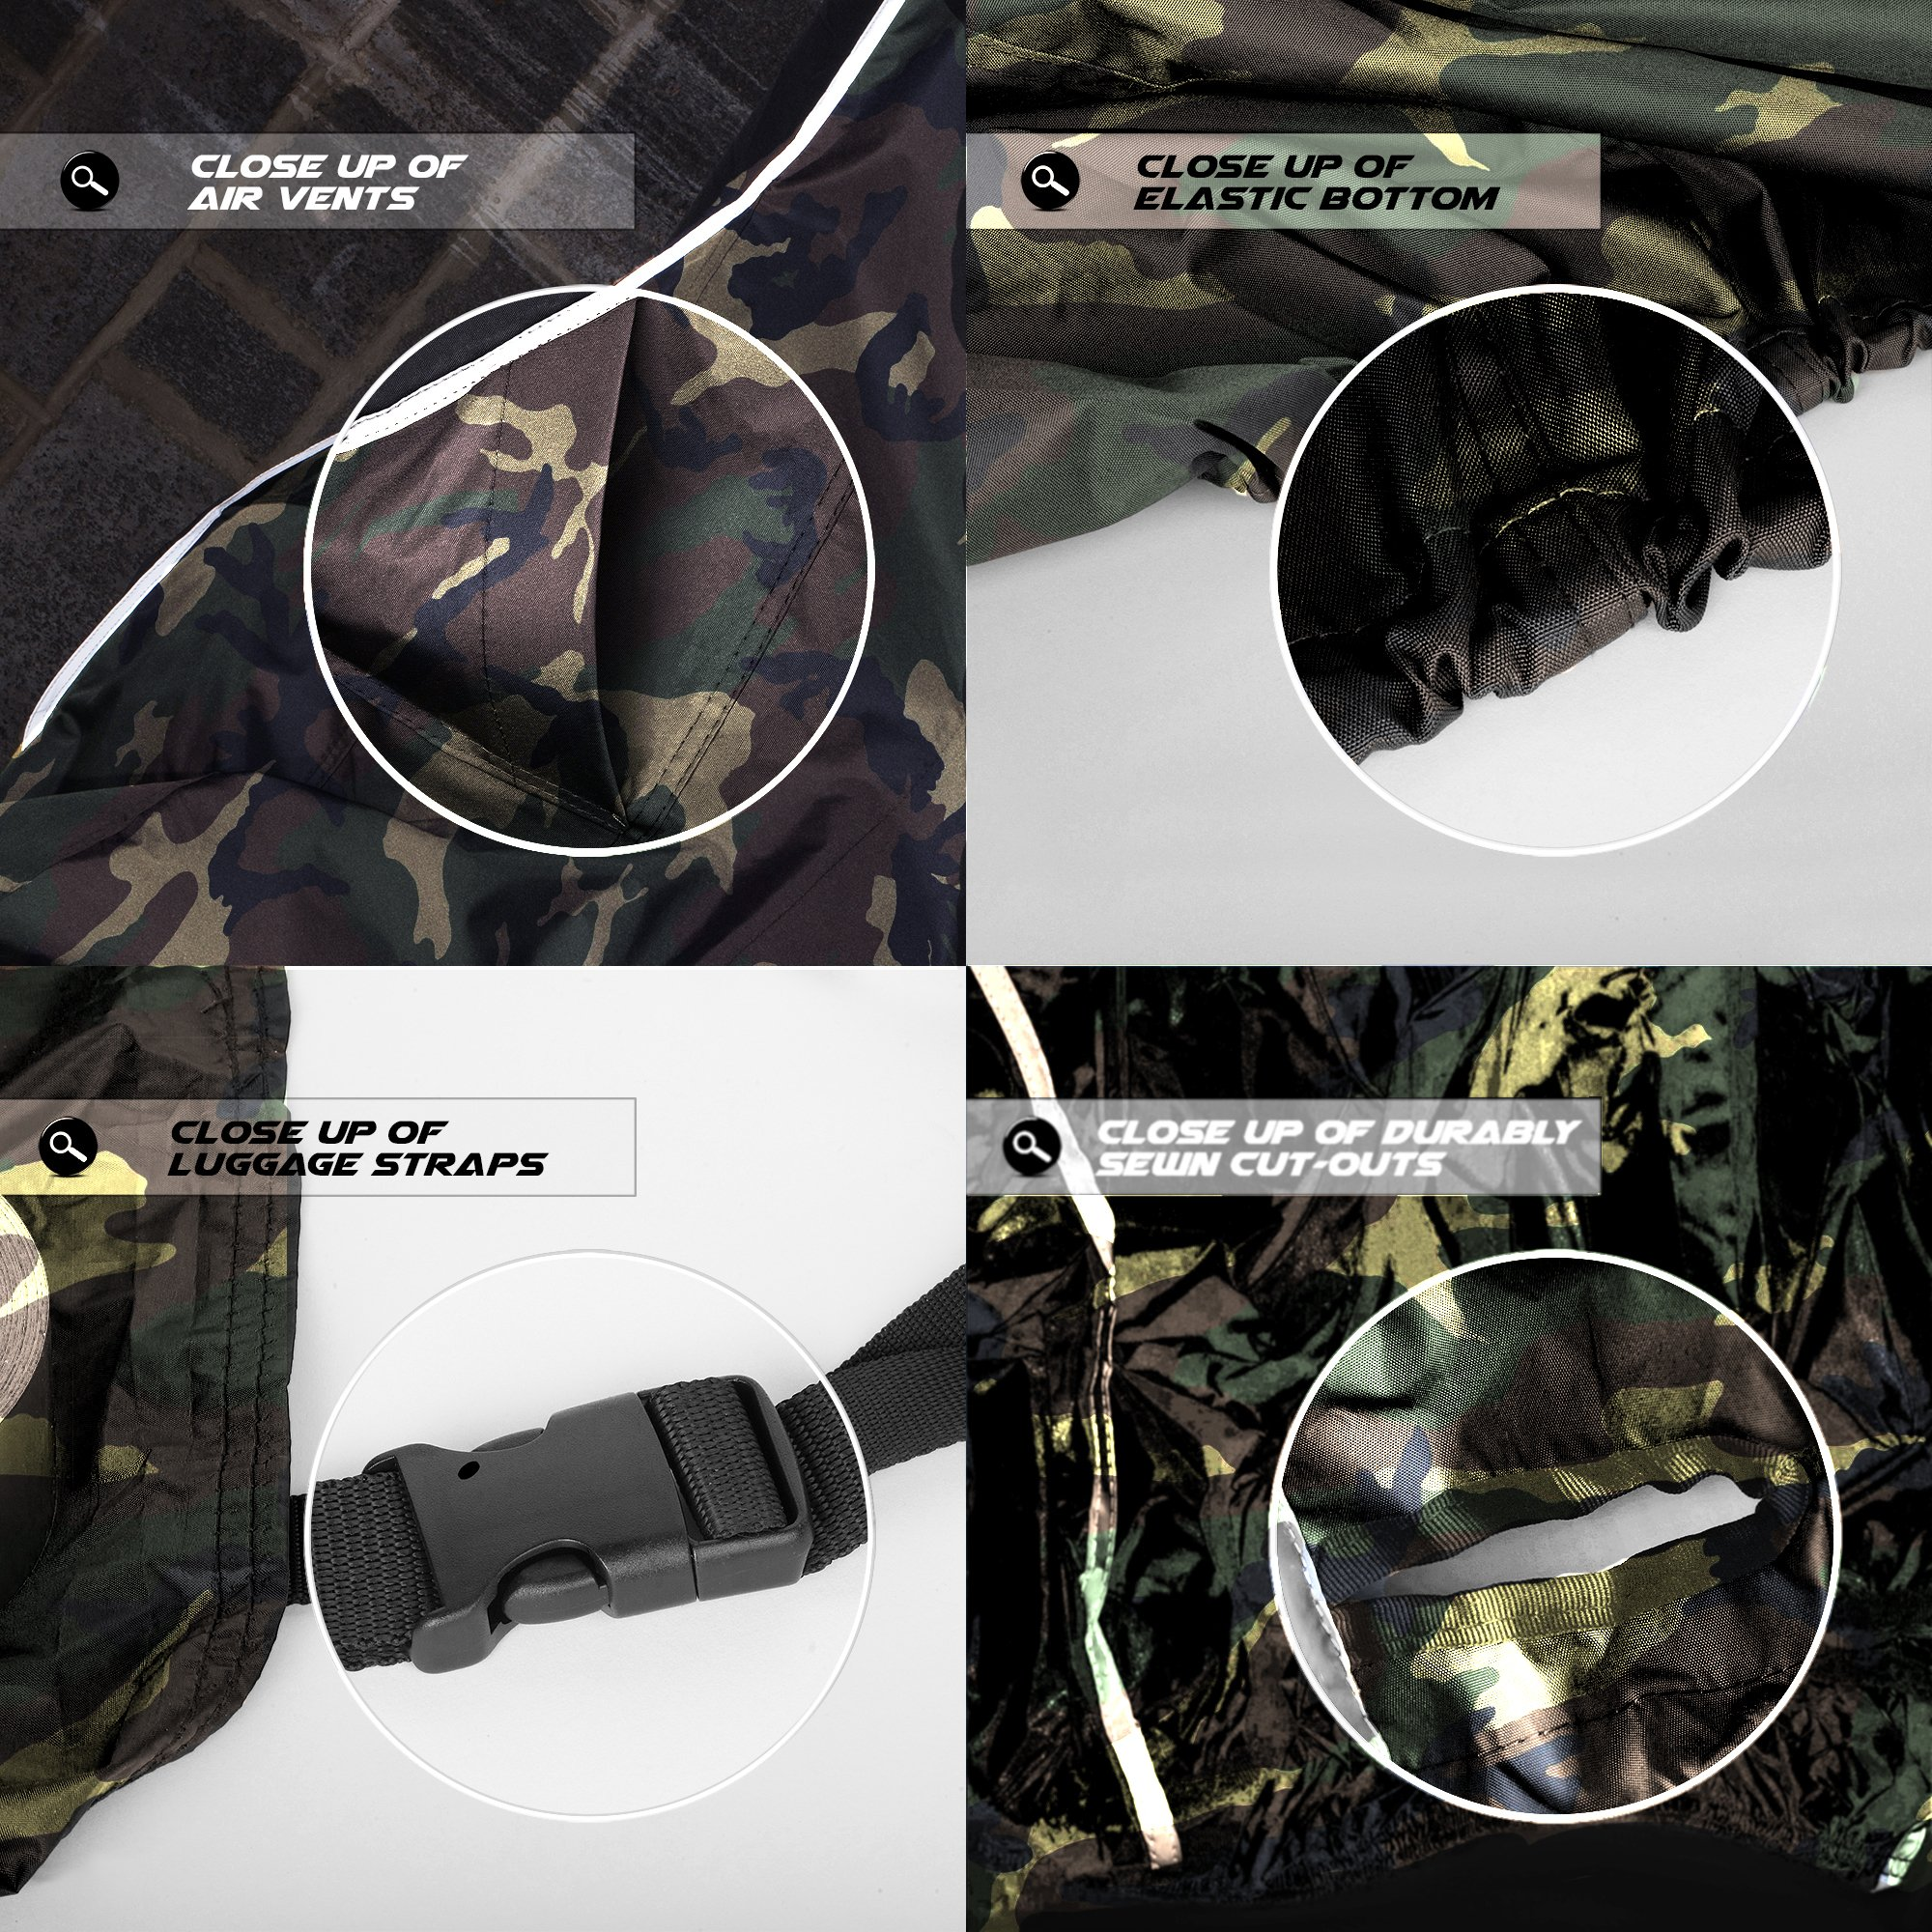 Premium Weather Resistant Covers Waterproof Polyester w/Soft Screen & Heat Resistant Shields.Motorcycle Cover has Lockable fabric, Durable & Long Lasting.Sportbikes & Cruisers (XX-Large, Camouflage) by Nuzari (Image #7)